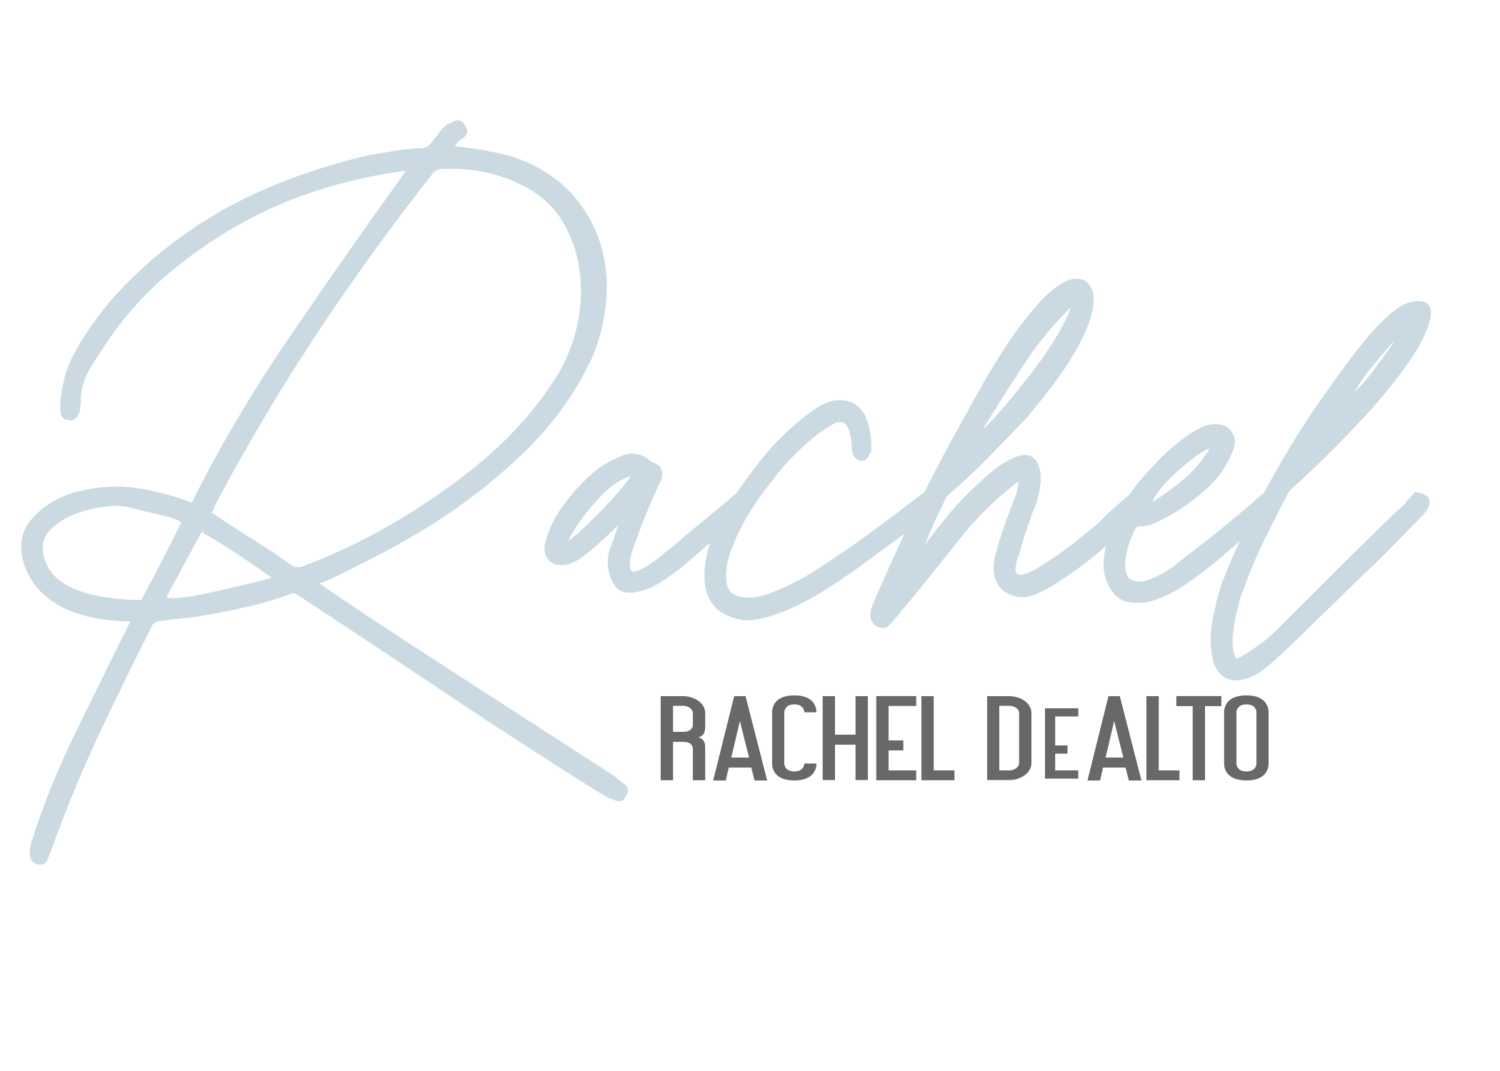 Rachel DeAlto - Relationship Expert and Keynote Speaker